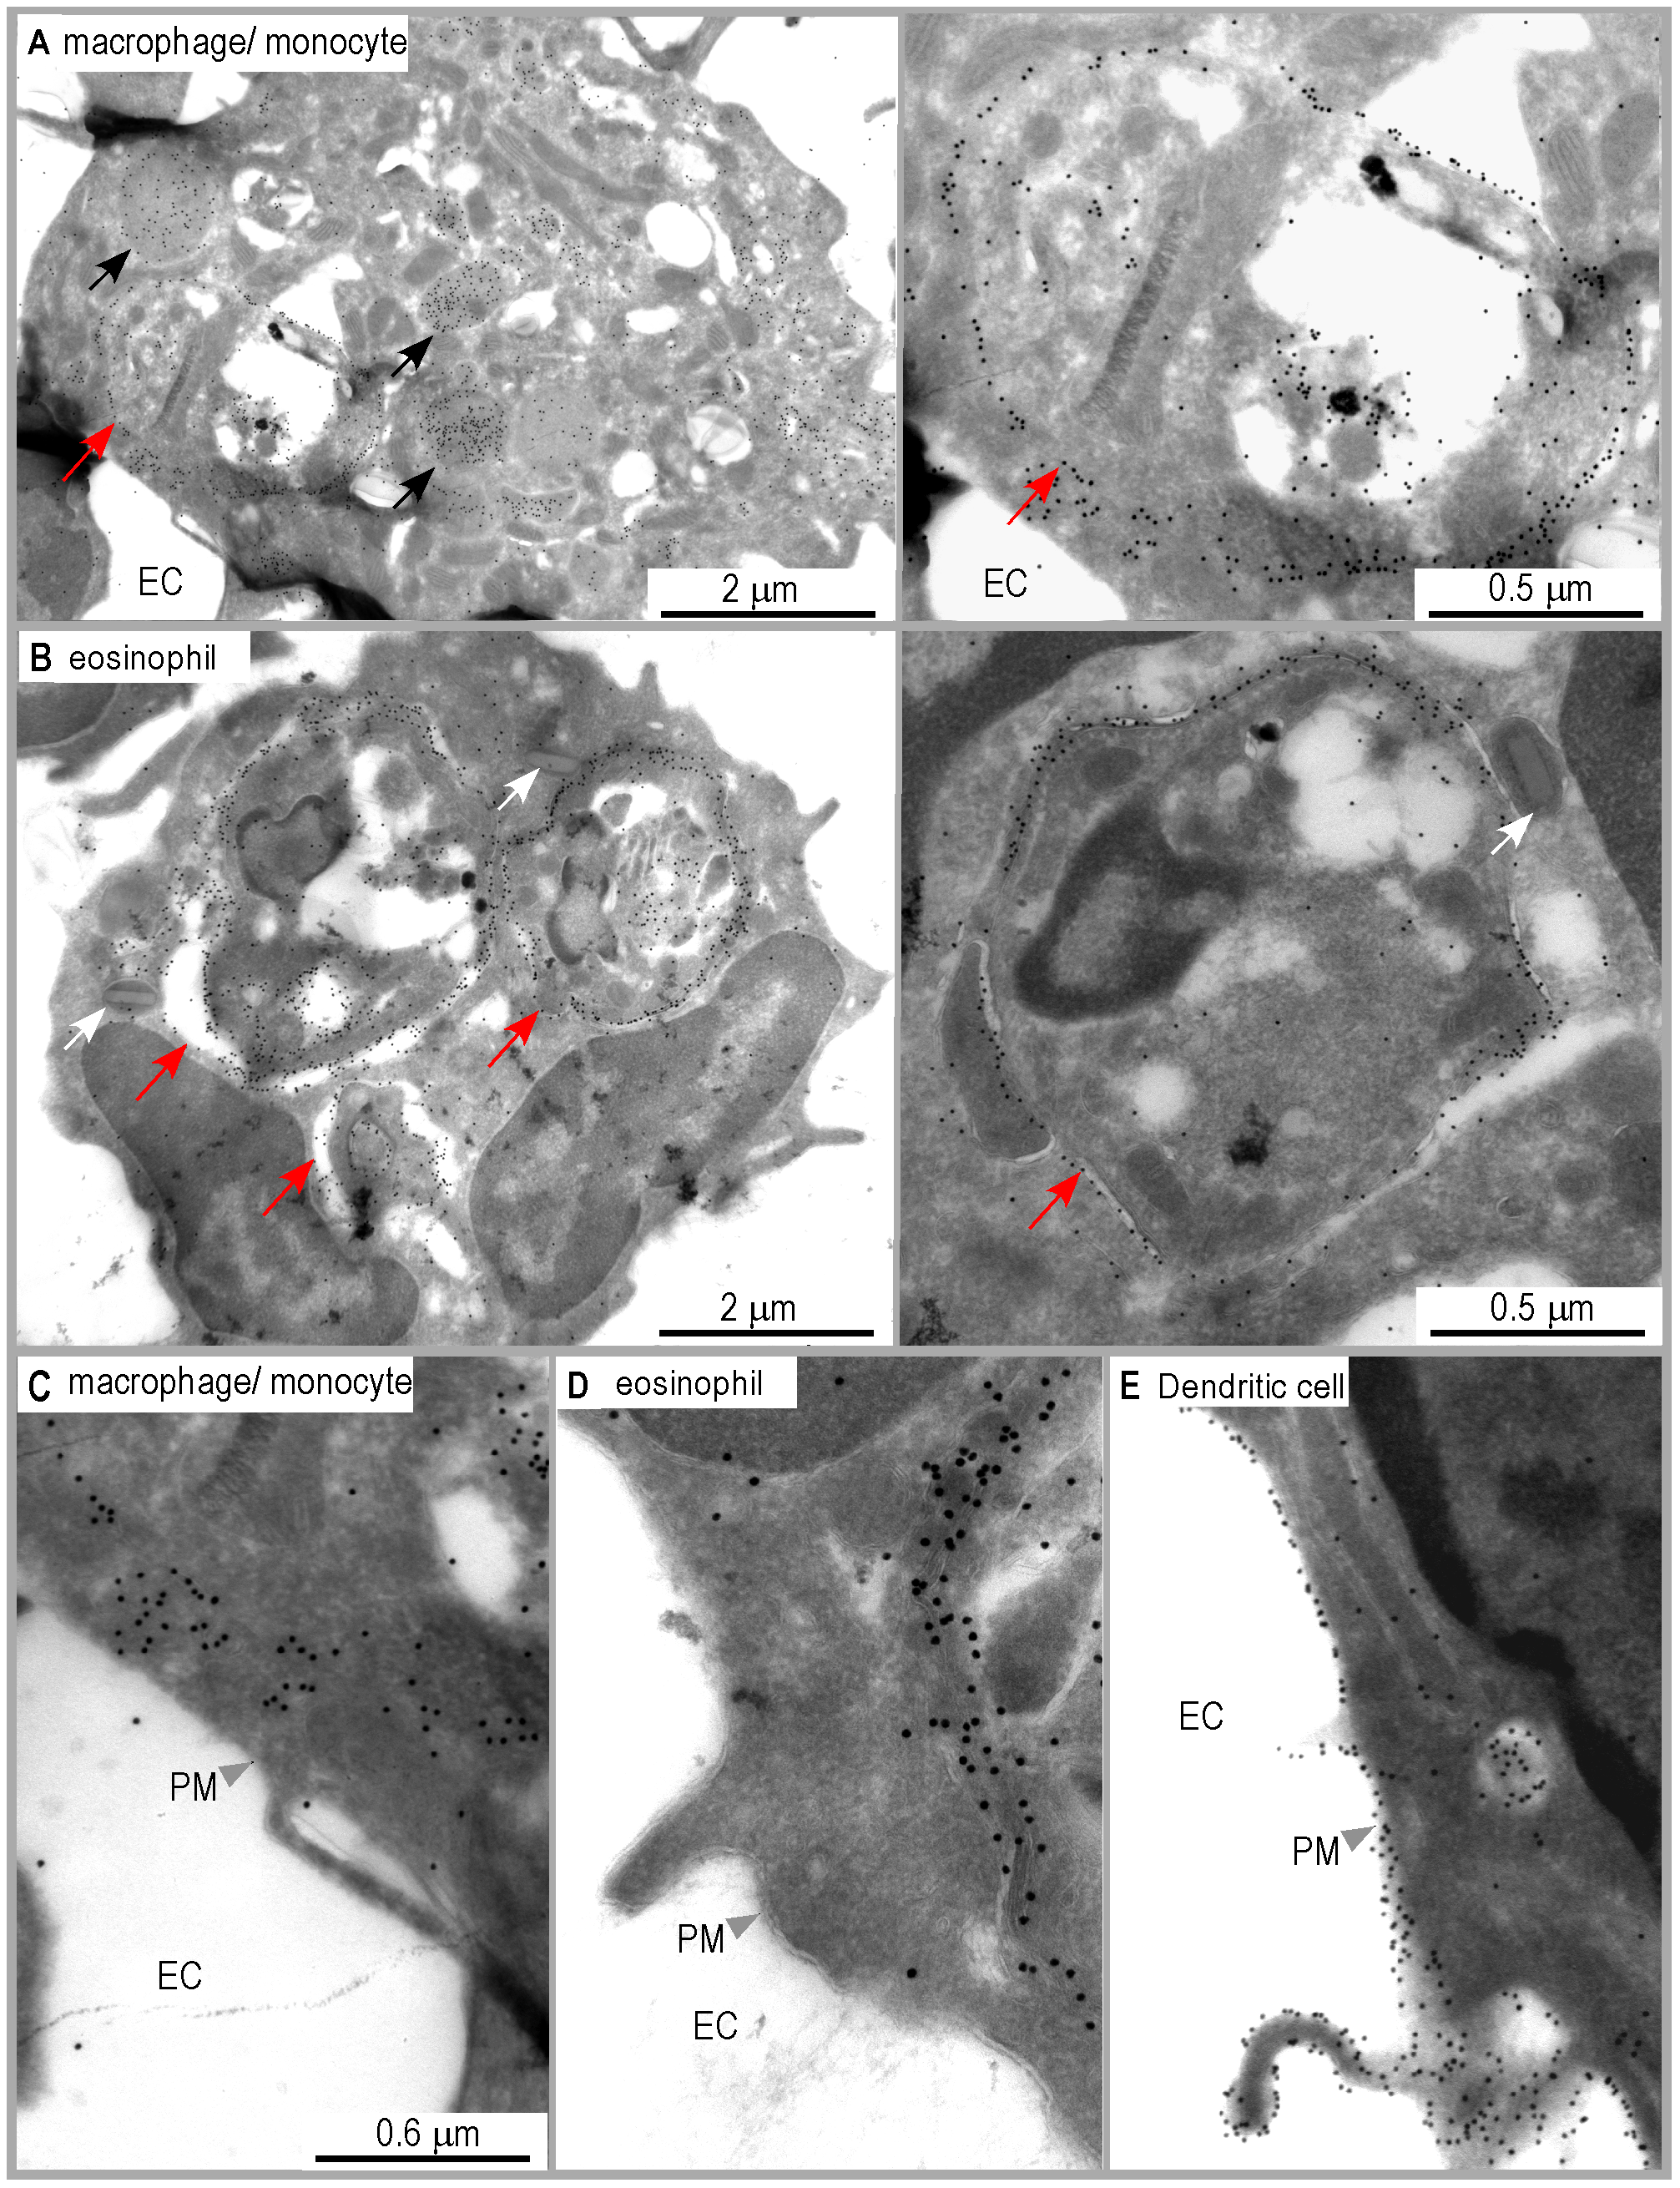 Distribution of I-A<sup>d</sup>/LACK complexes in eosinophil and macrophage intracellular compartments.